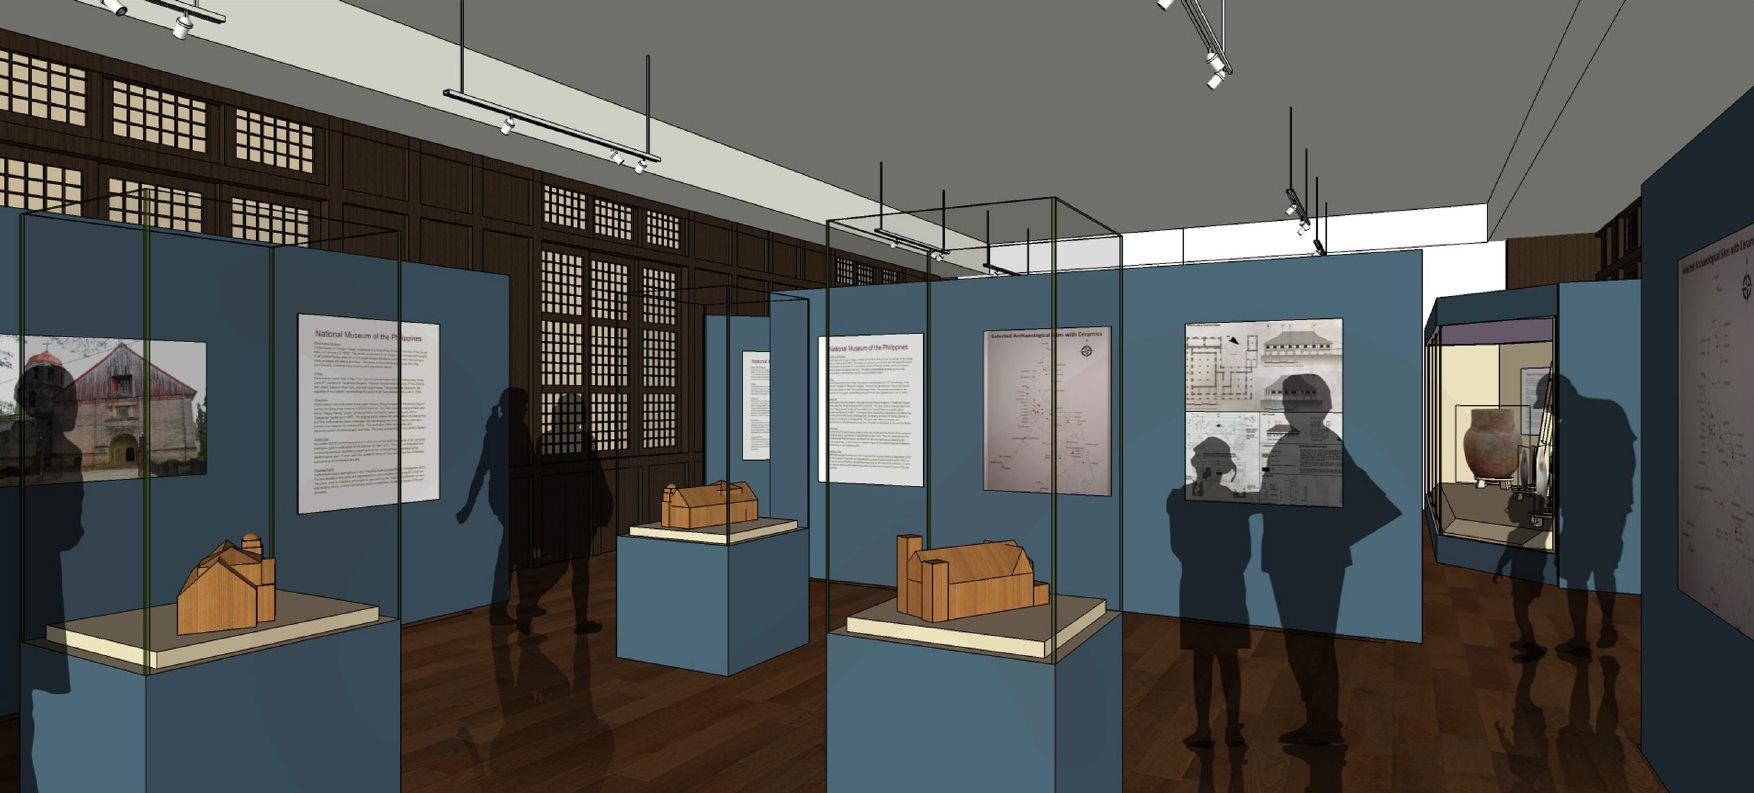 Preview rendering of future AABHD exhibitions to be housed within the Presidencia, one of the many galleries to be housed in the new regional branch of the National Museum | NMP EEMPSD 2020